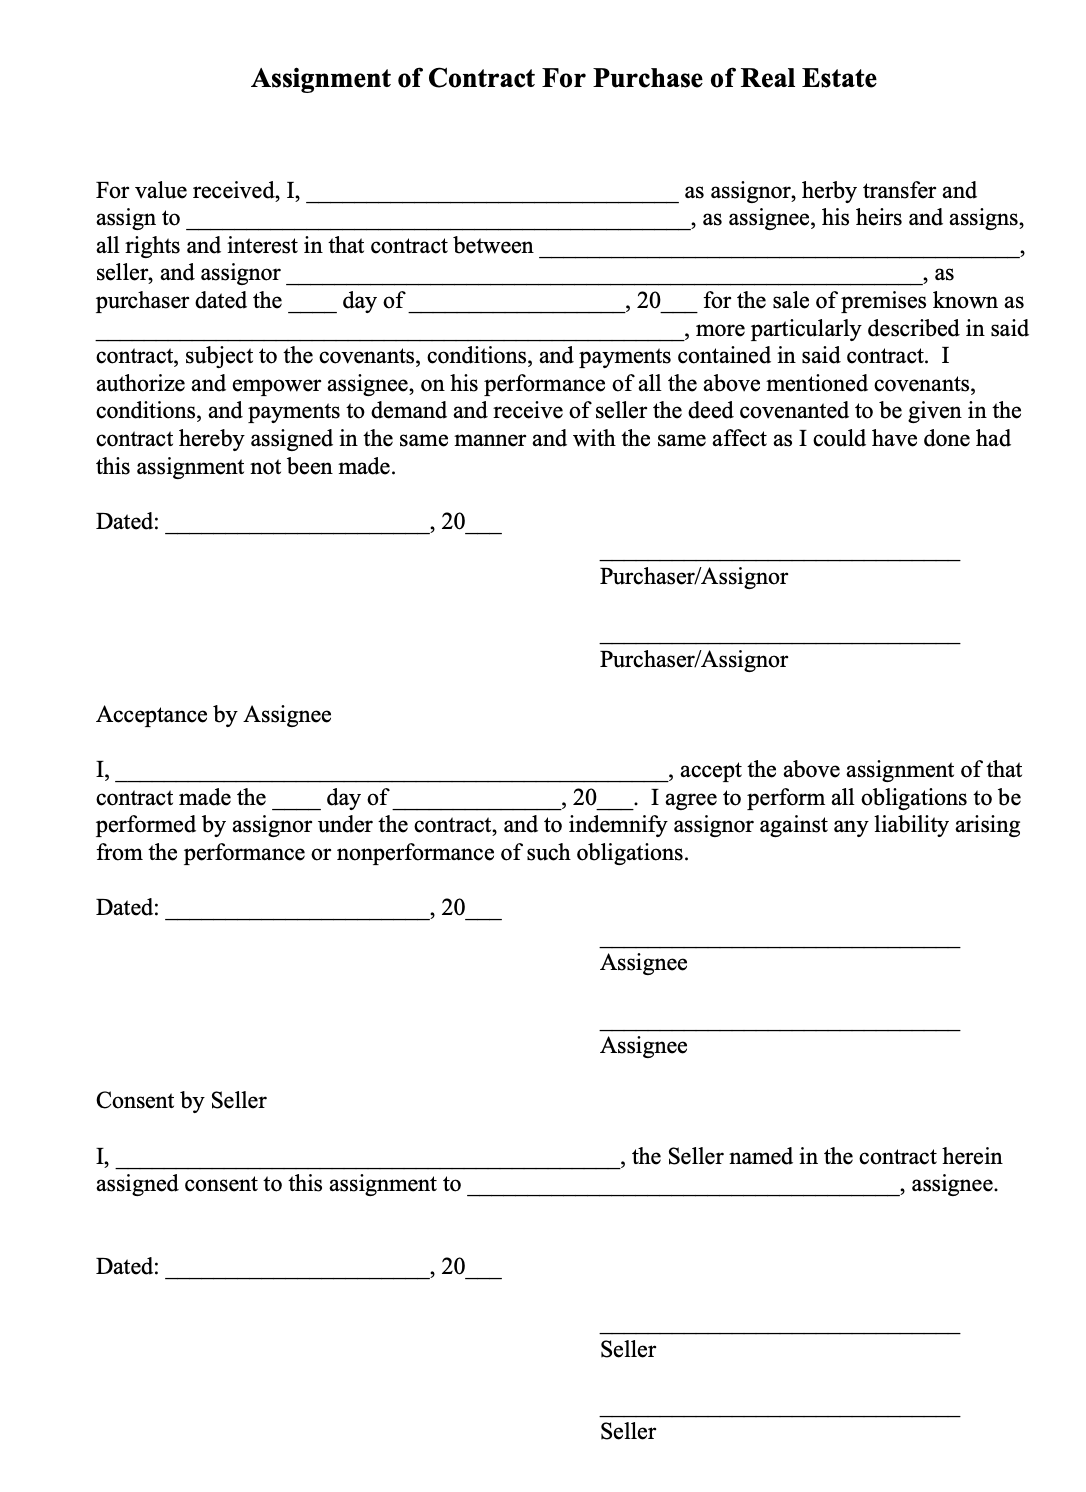 Maryland real estate assignment contract